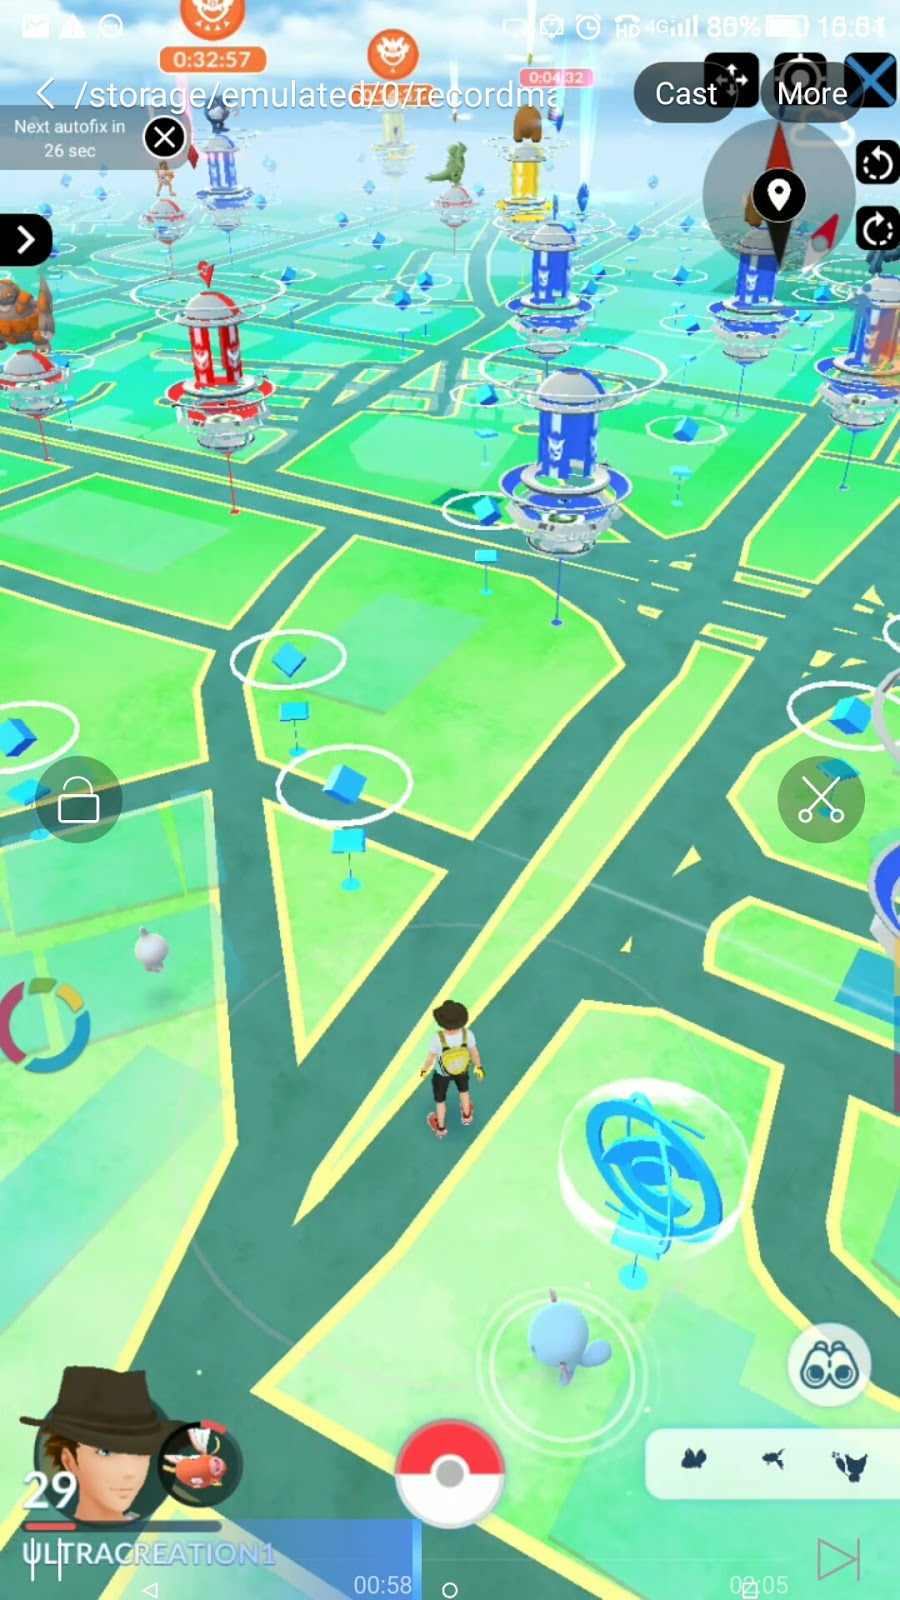 sny tecnical: BEST LOCATIONS FOR POKEMON GO WITH COORDINATES